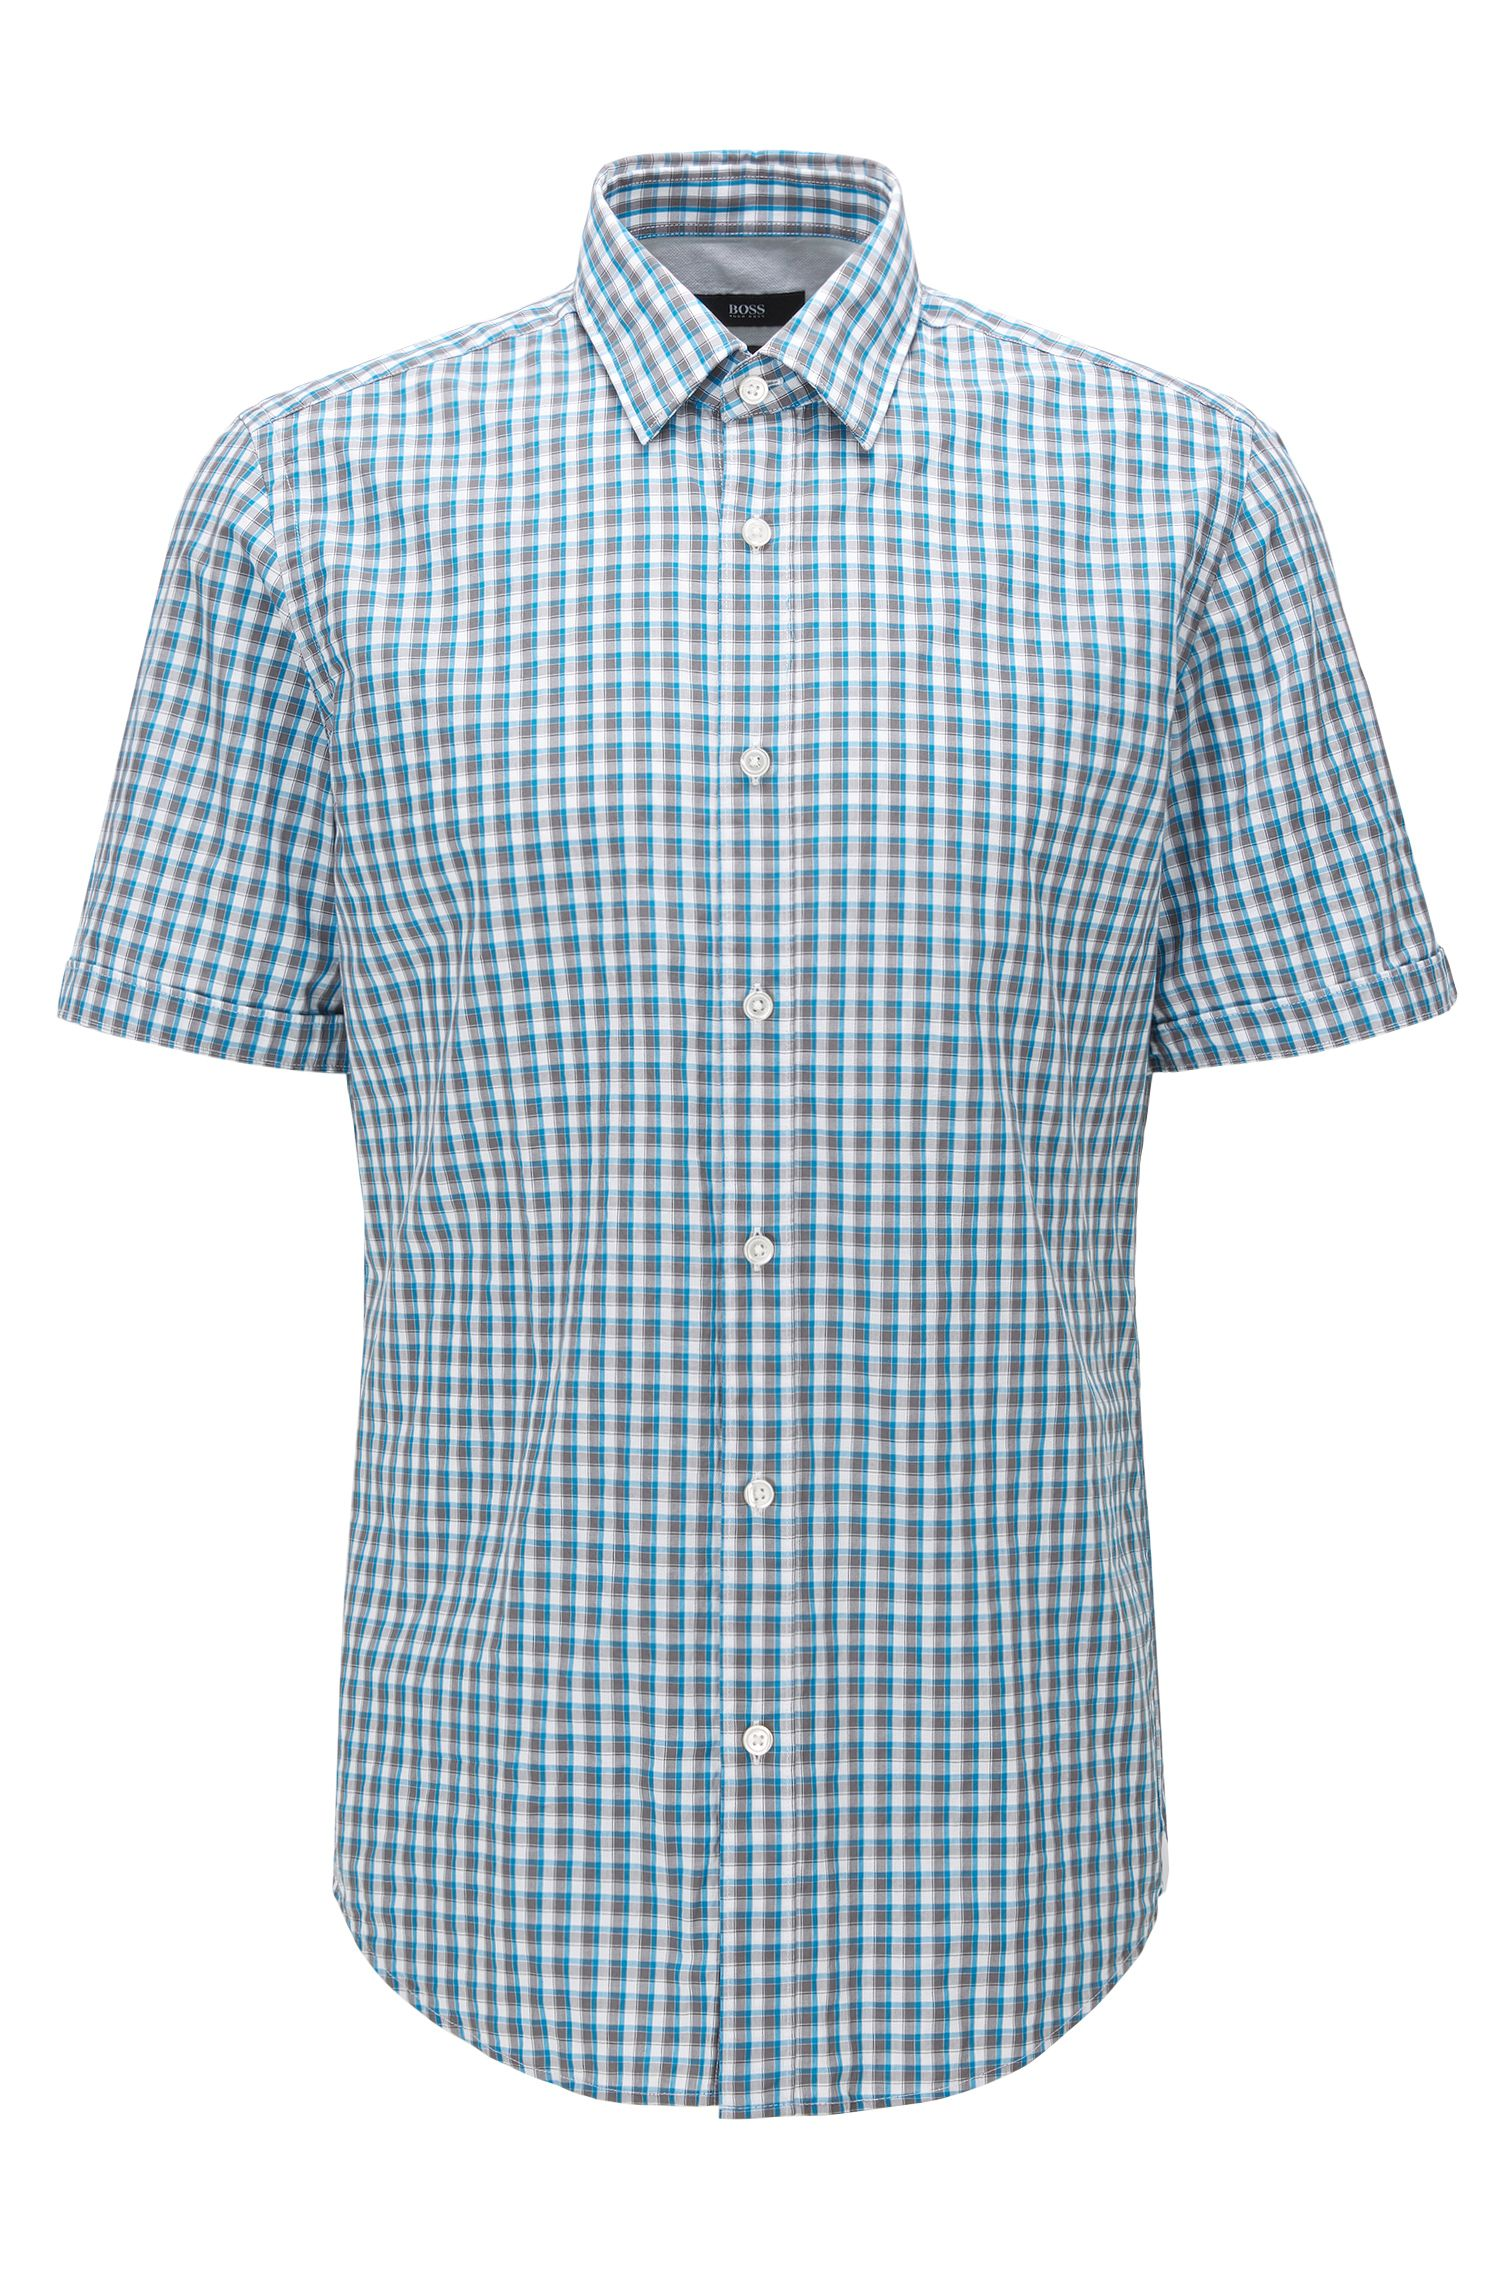 Regular-fit short-sleeved cotton shirt in a Vichy check